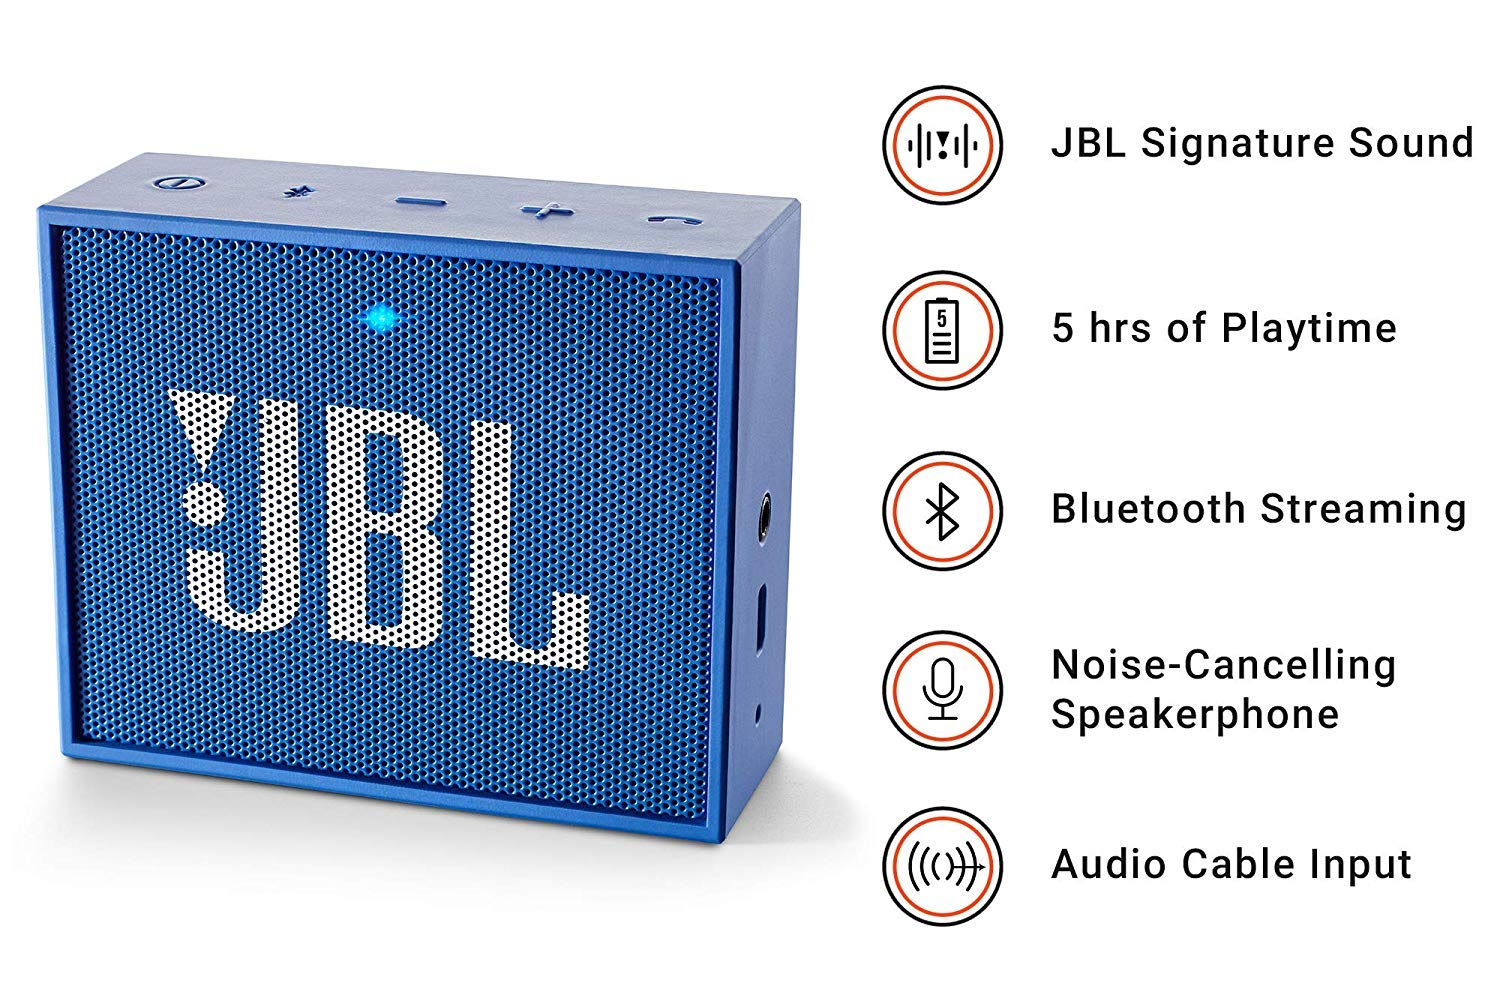 jbl gift for brothers,unique gifts for brother